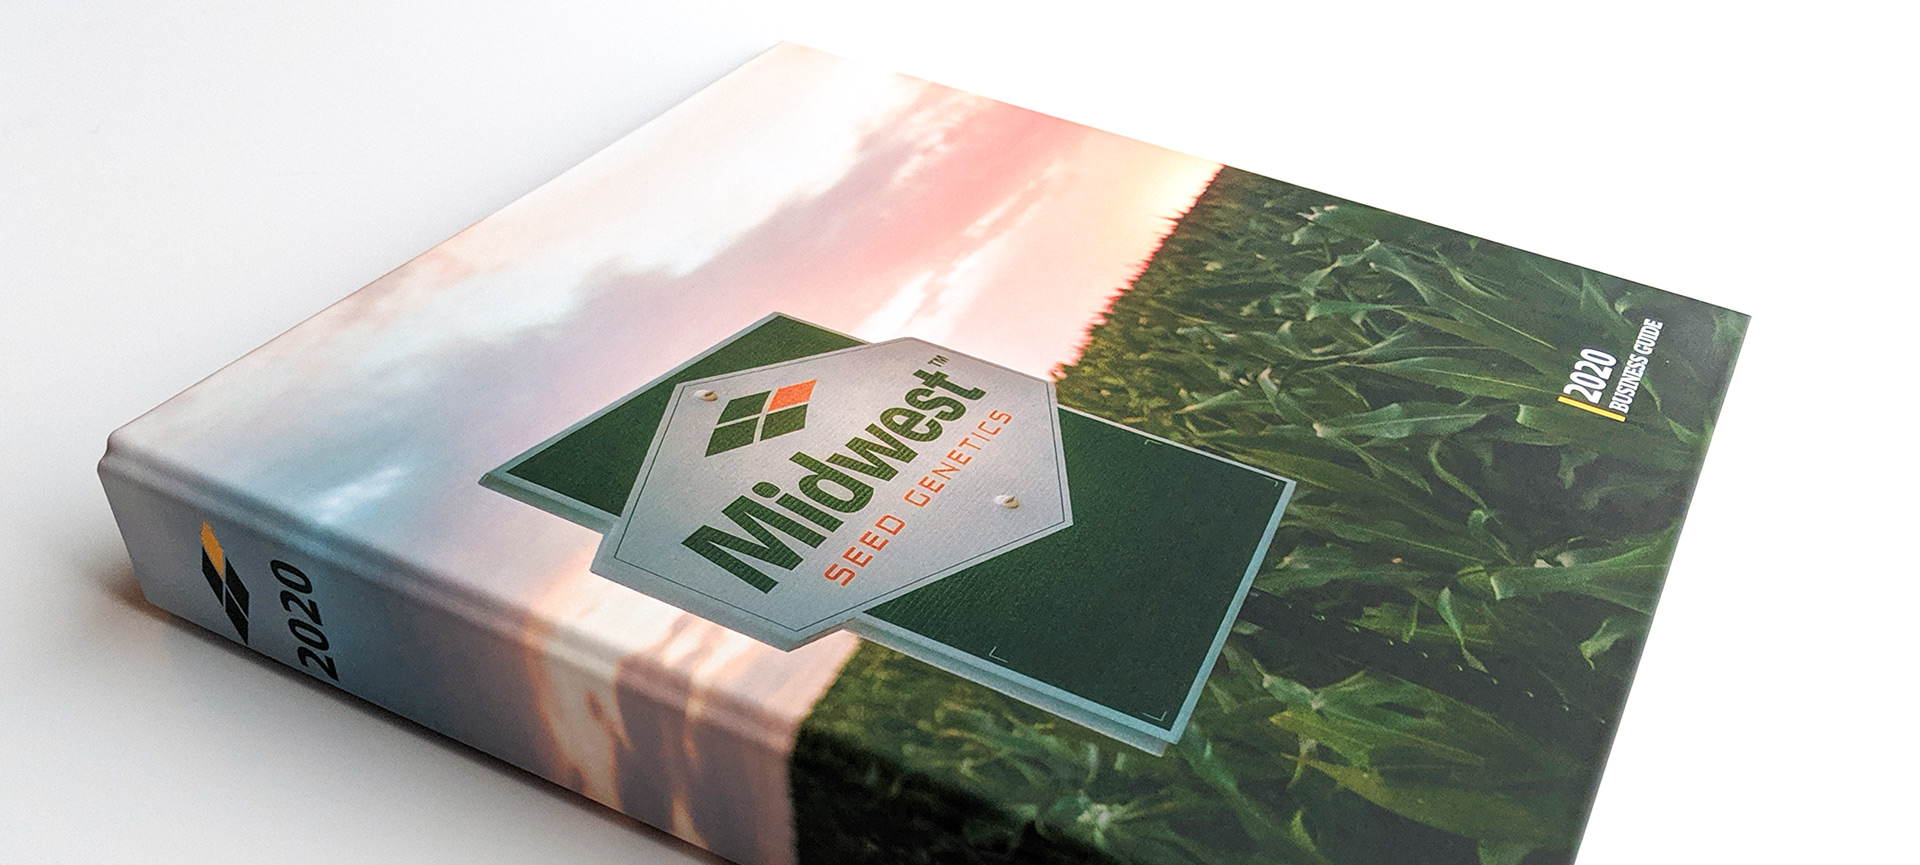 Midwest Seed Book